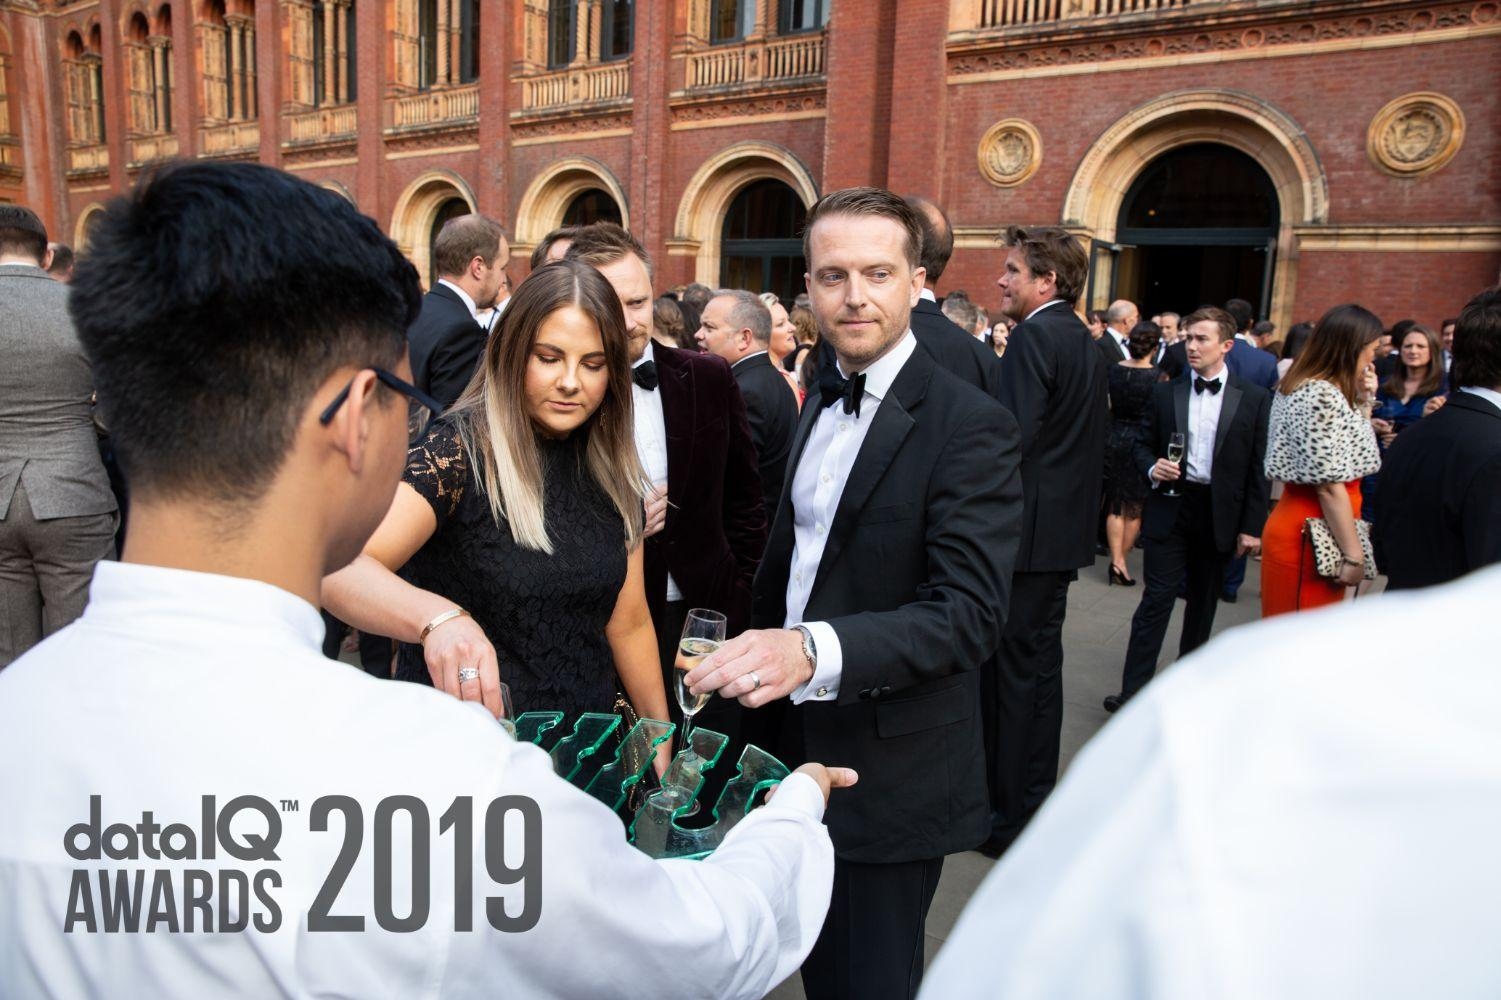 Awards 2019 Image 144